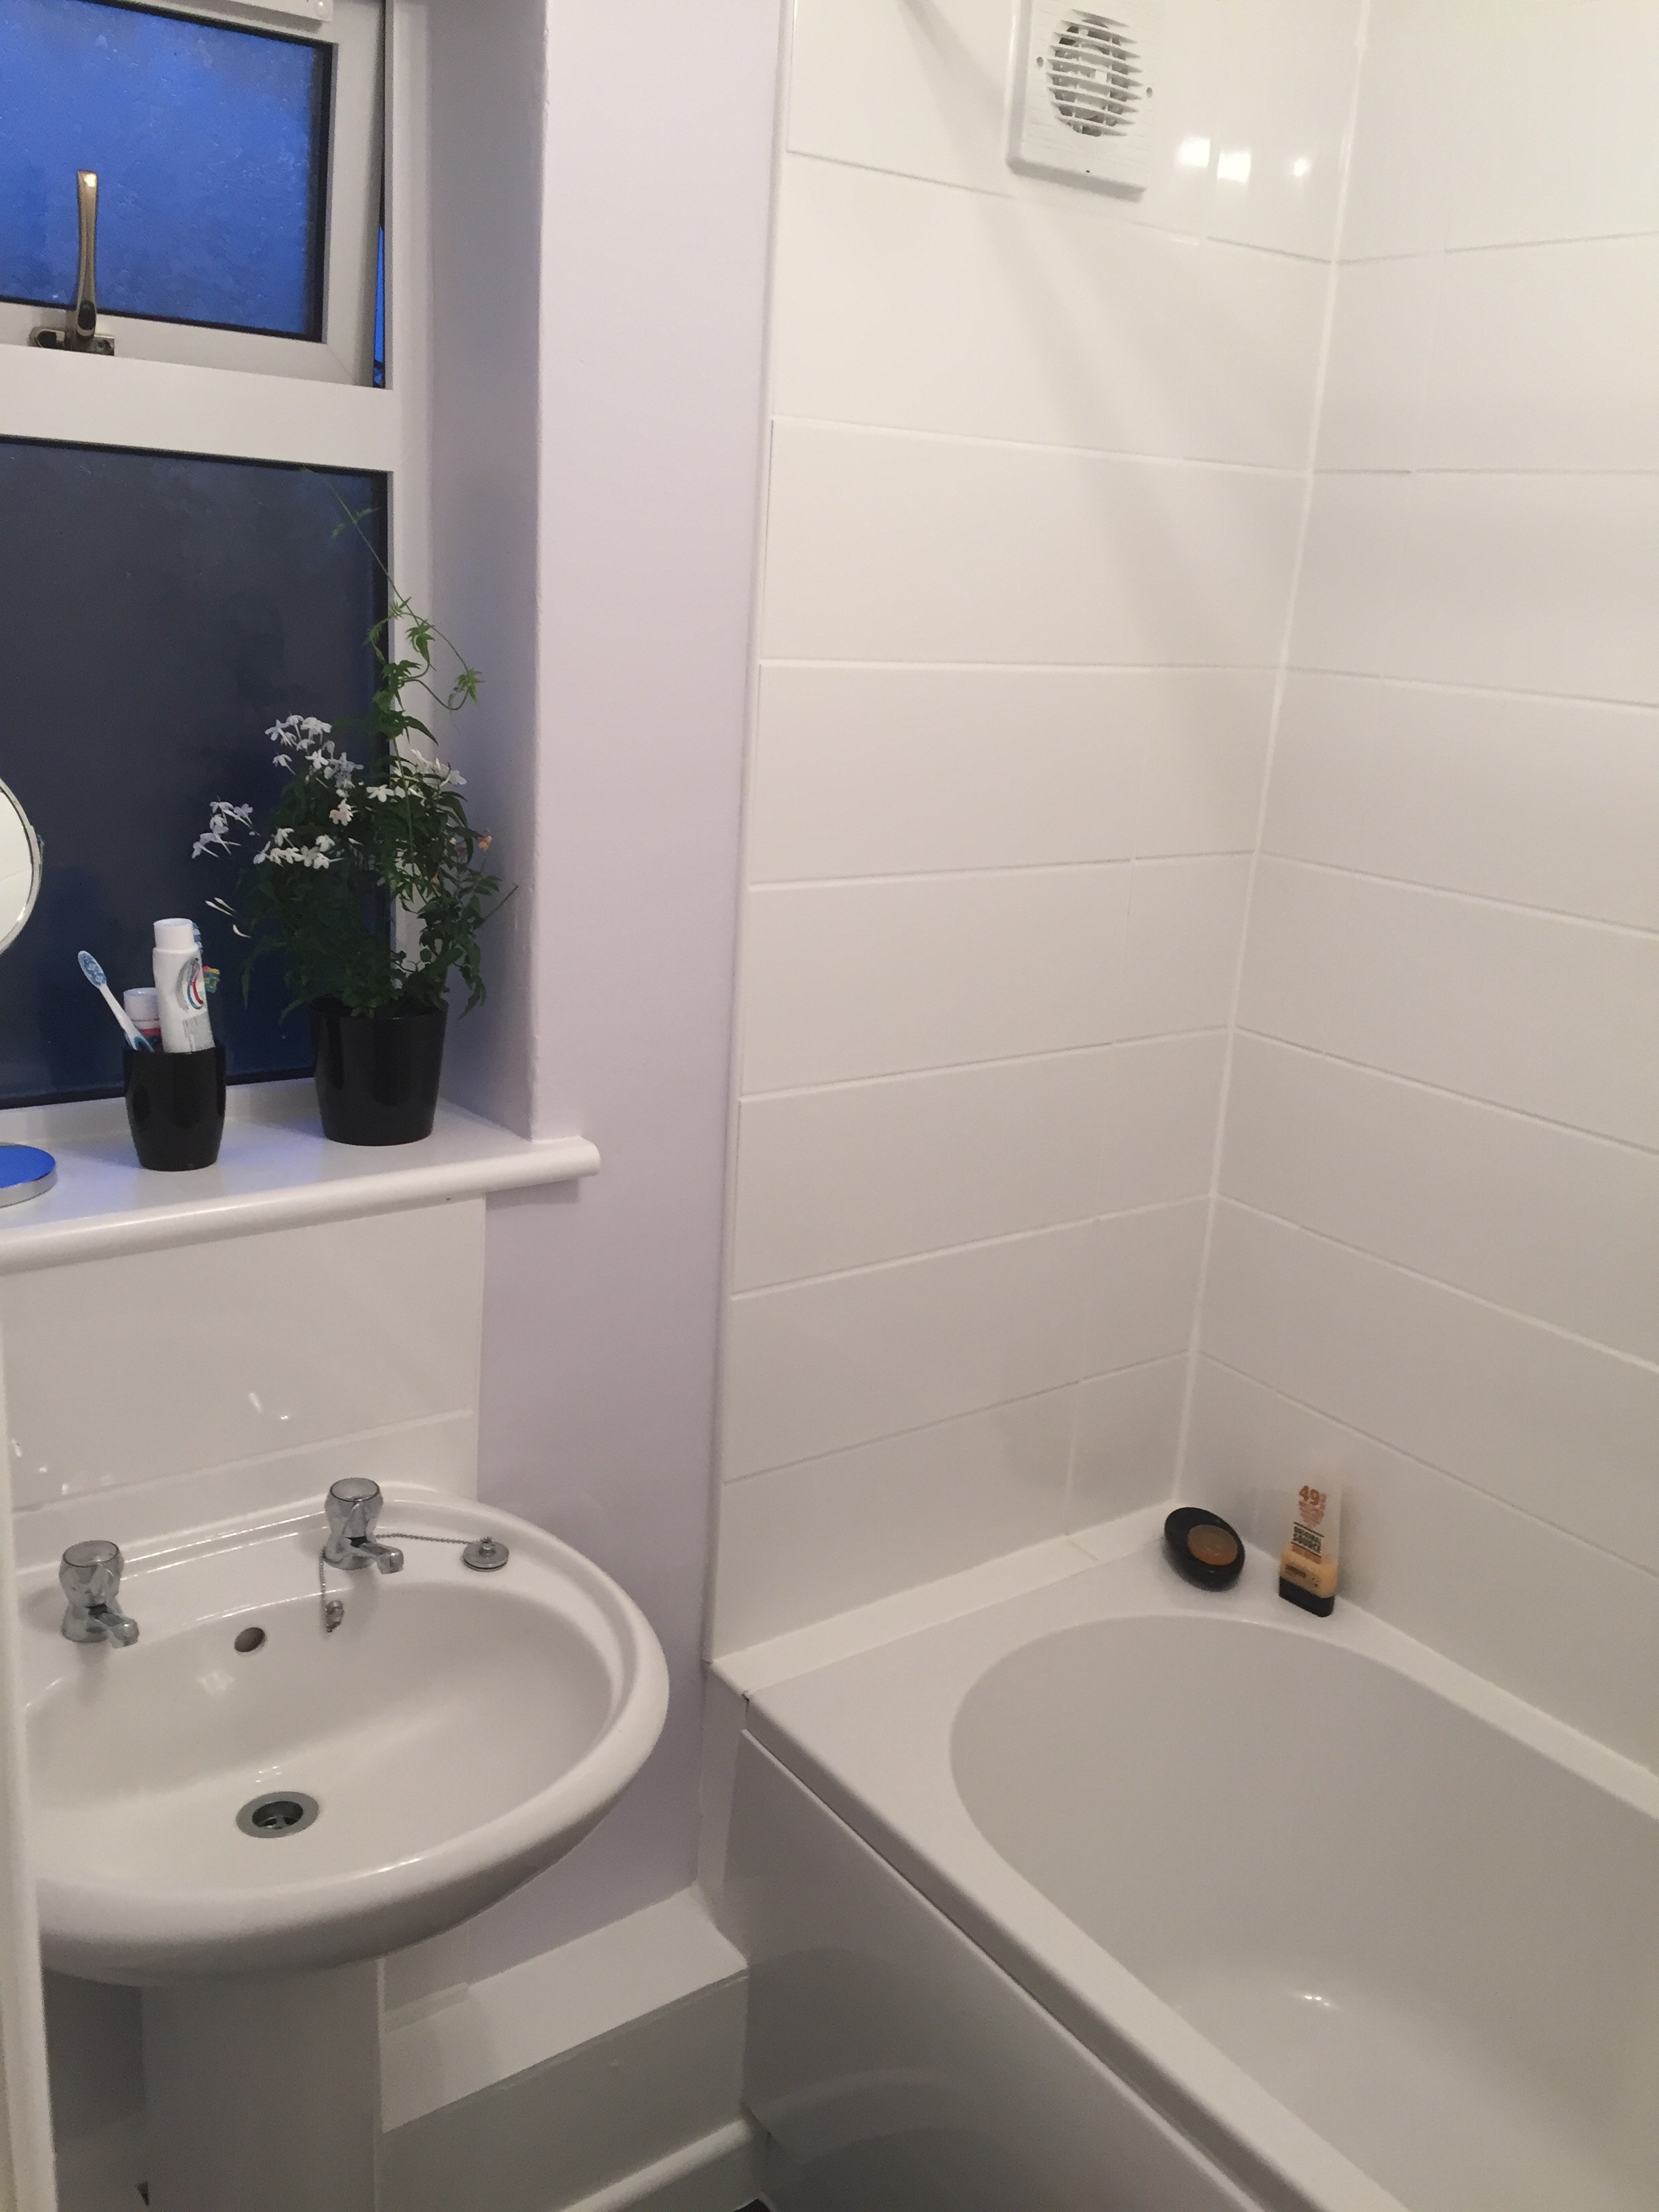 Bathroom Fitters In Lincoln Bathroom Installations Lincoln - Local bathroom installers